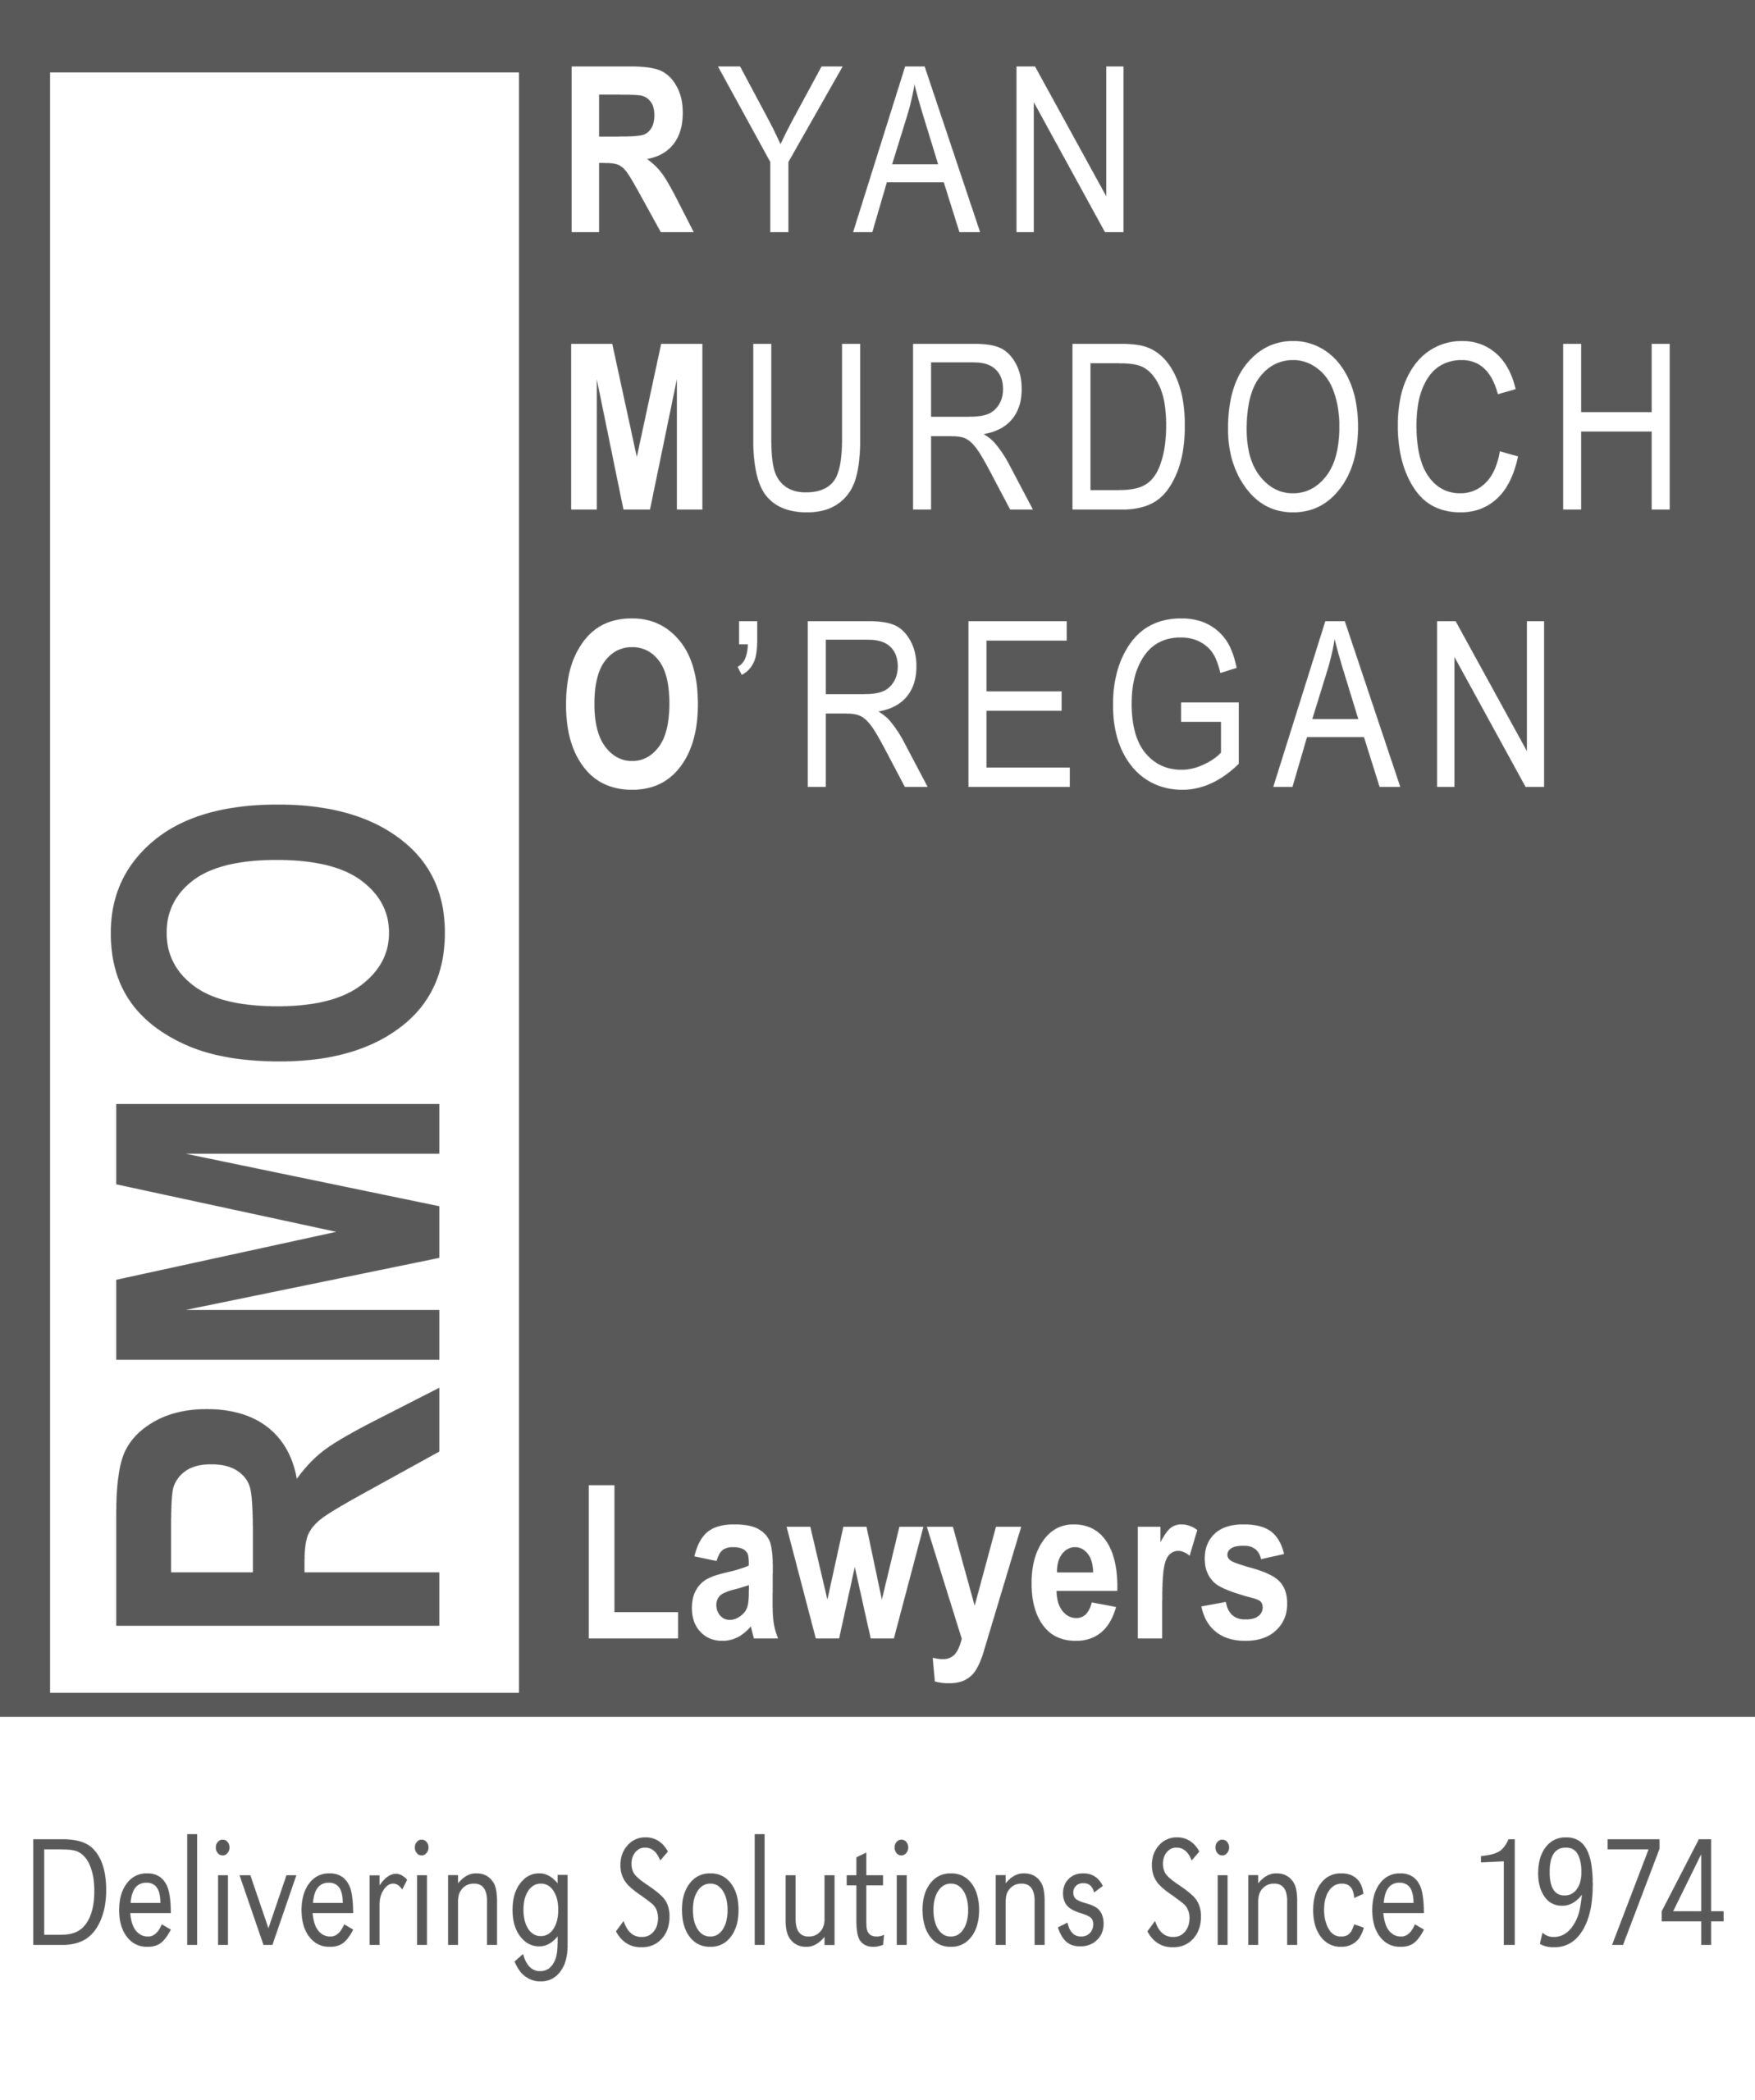 Ryan Murdoch O'Regan Lawyers